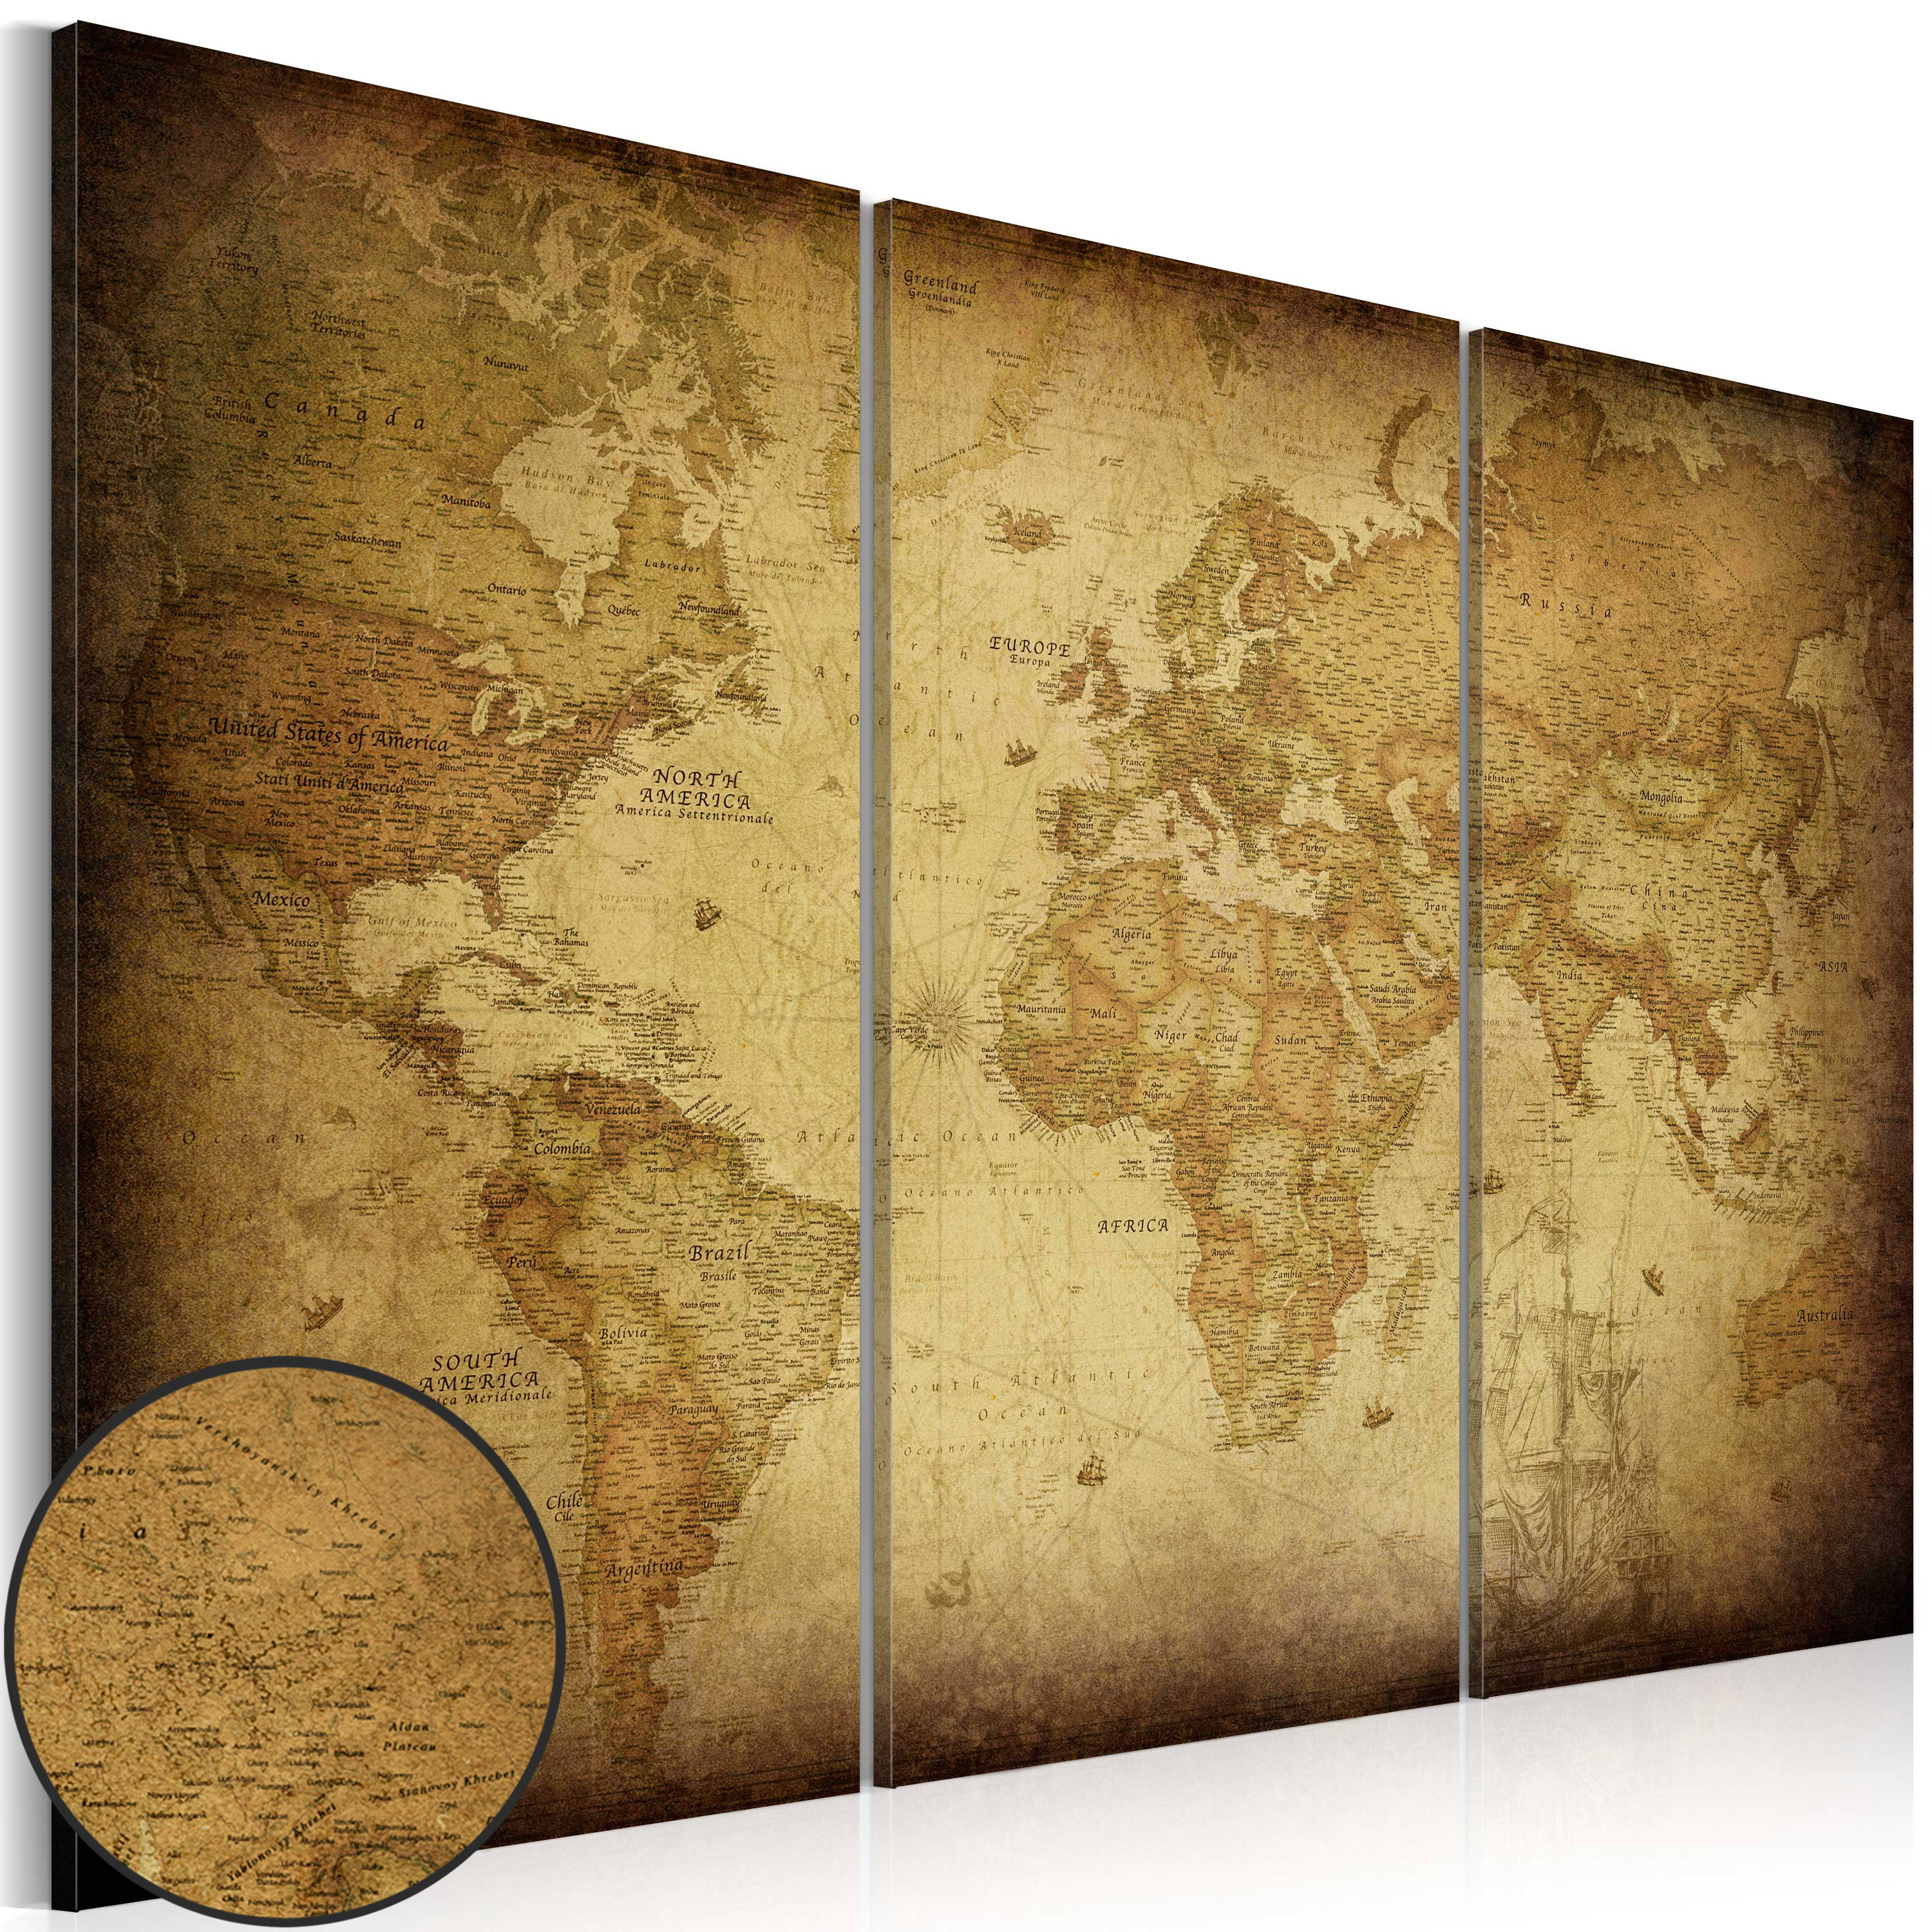 Tableau - Old map: triptych